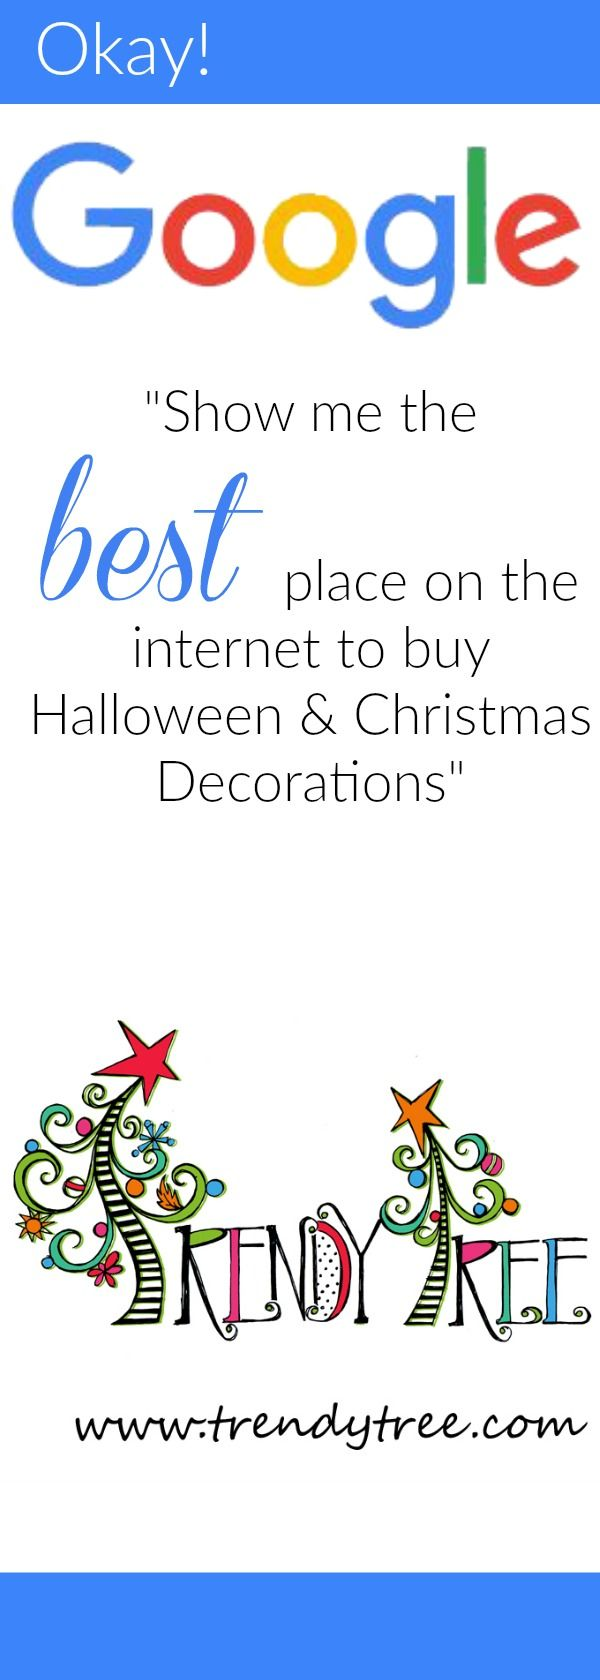 Visit Trendy Tree to shop for stunning, whimsical and traditional ...